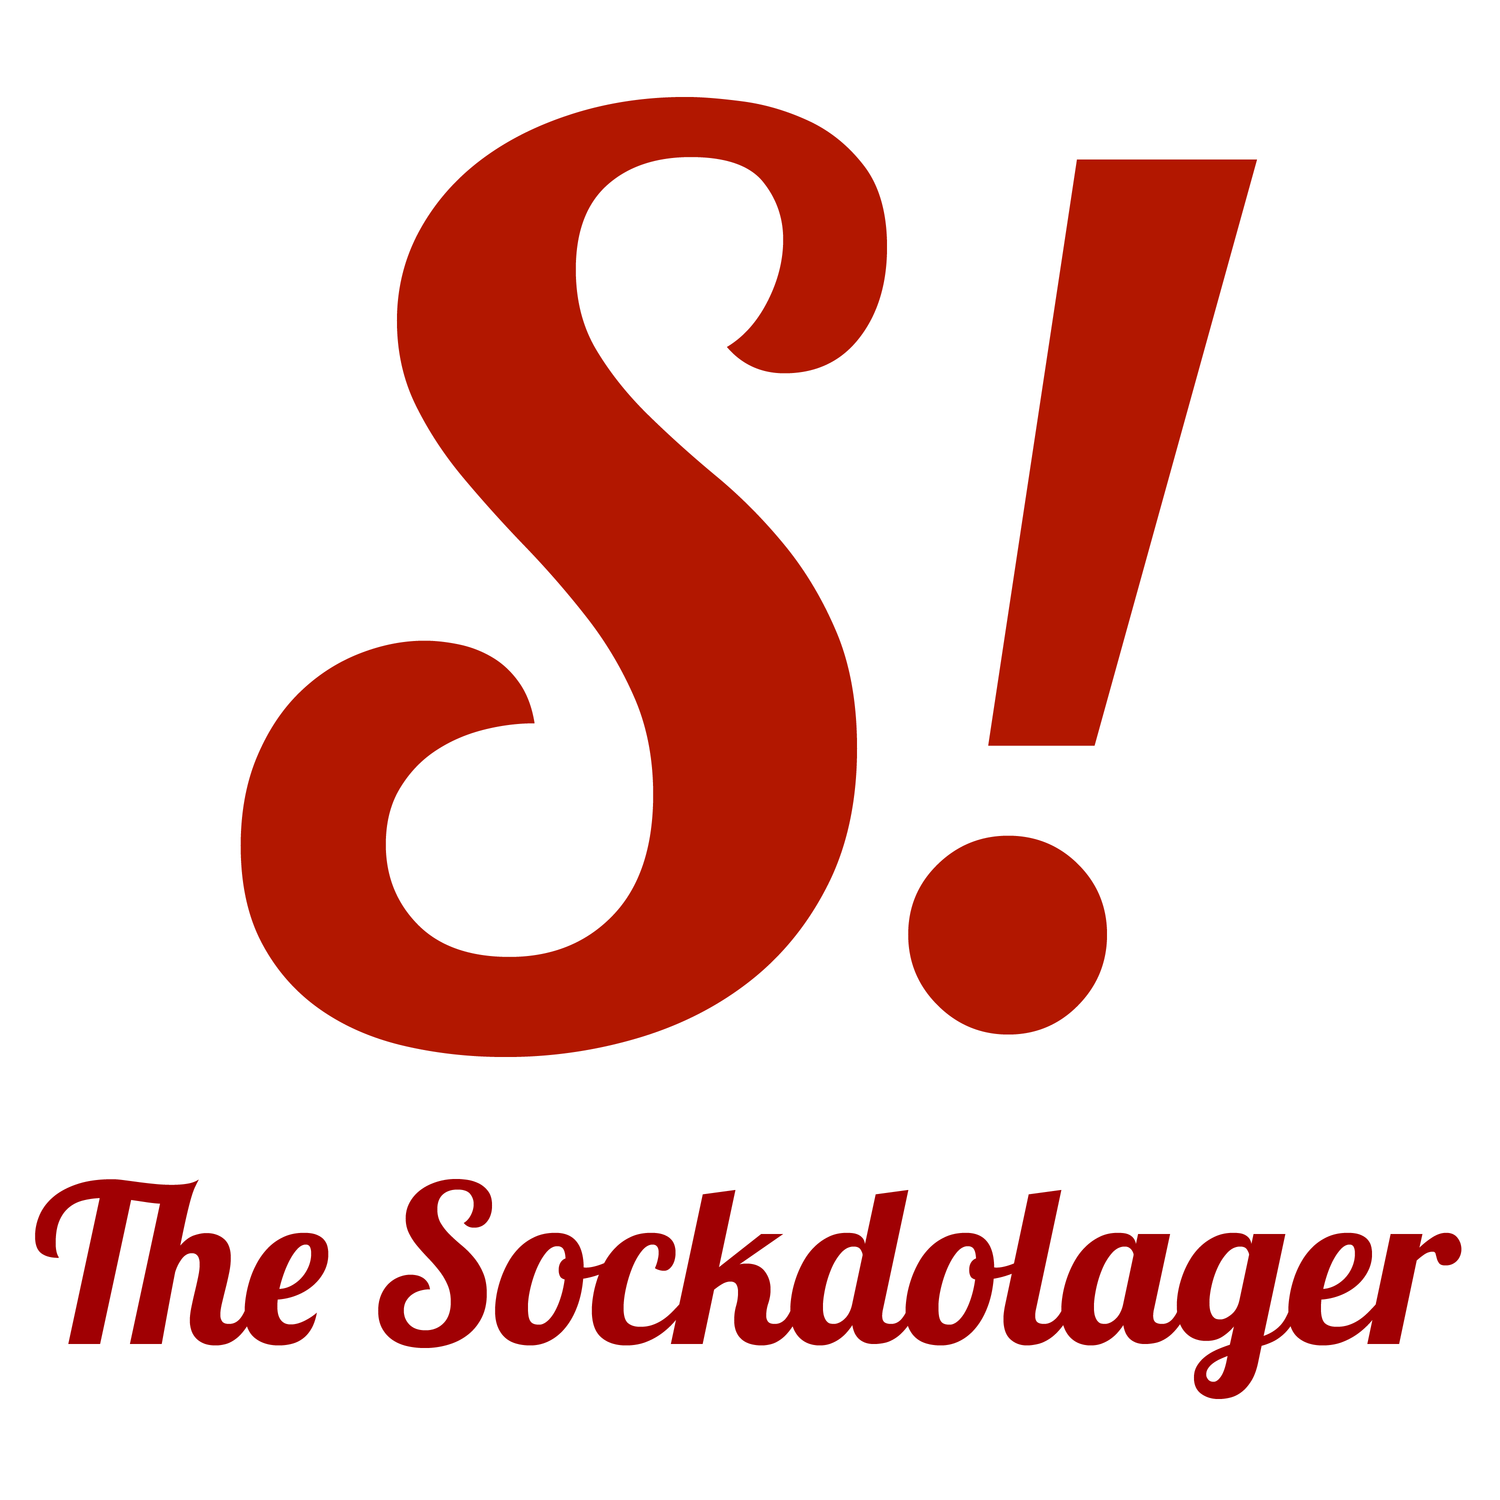 News - The Sockdolager